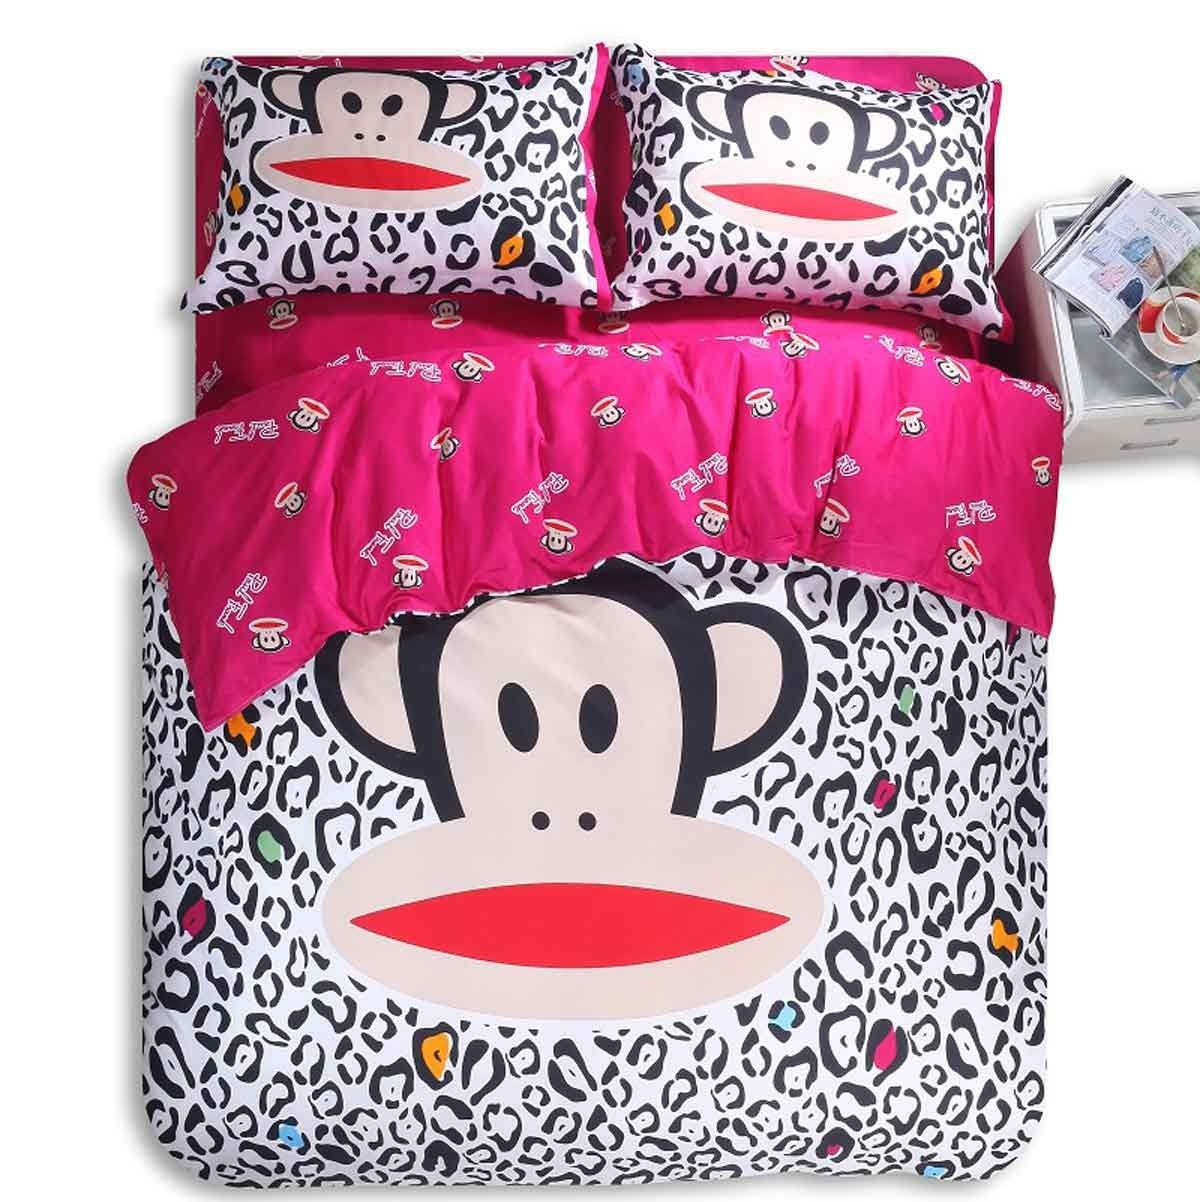 3pc Bedding Set (DKCD079) (With images) Bedding set